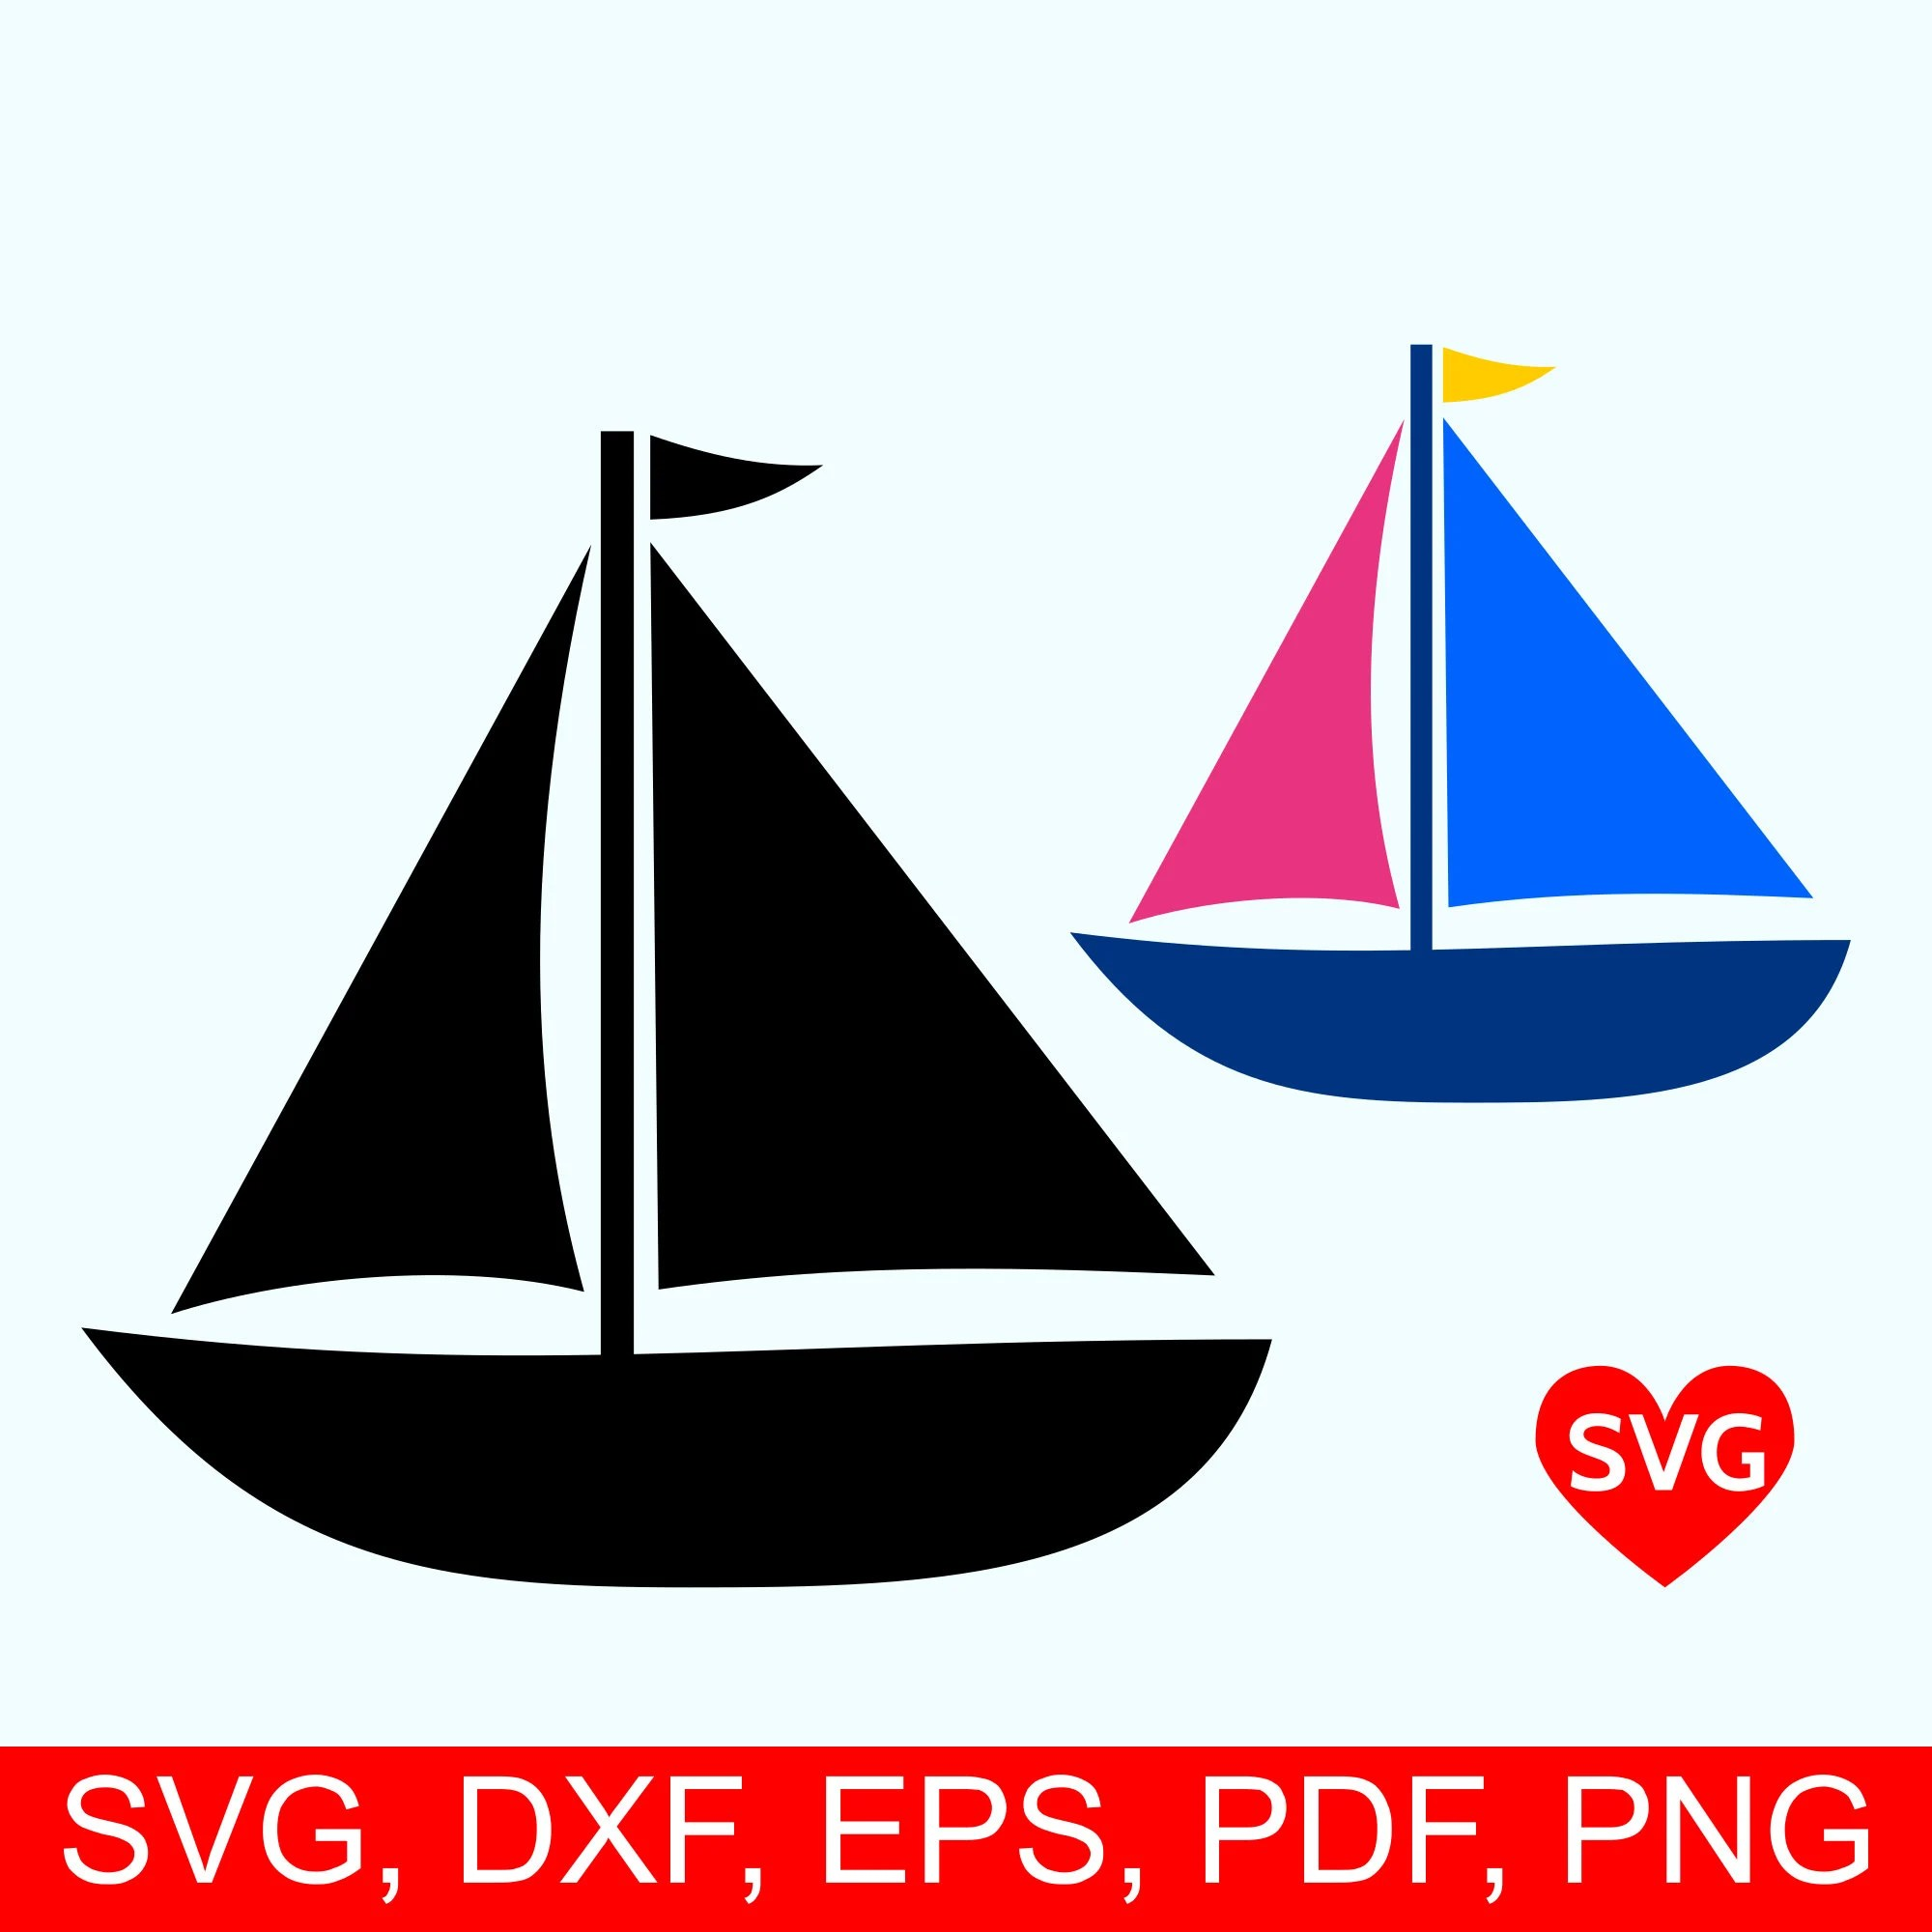 hight resolution of sailboat svg file sailing svg file for cricut sailboat clipart printable sail boat silhouette nautical svg clipart summer svg files